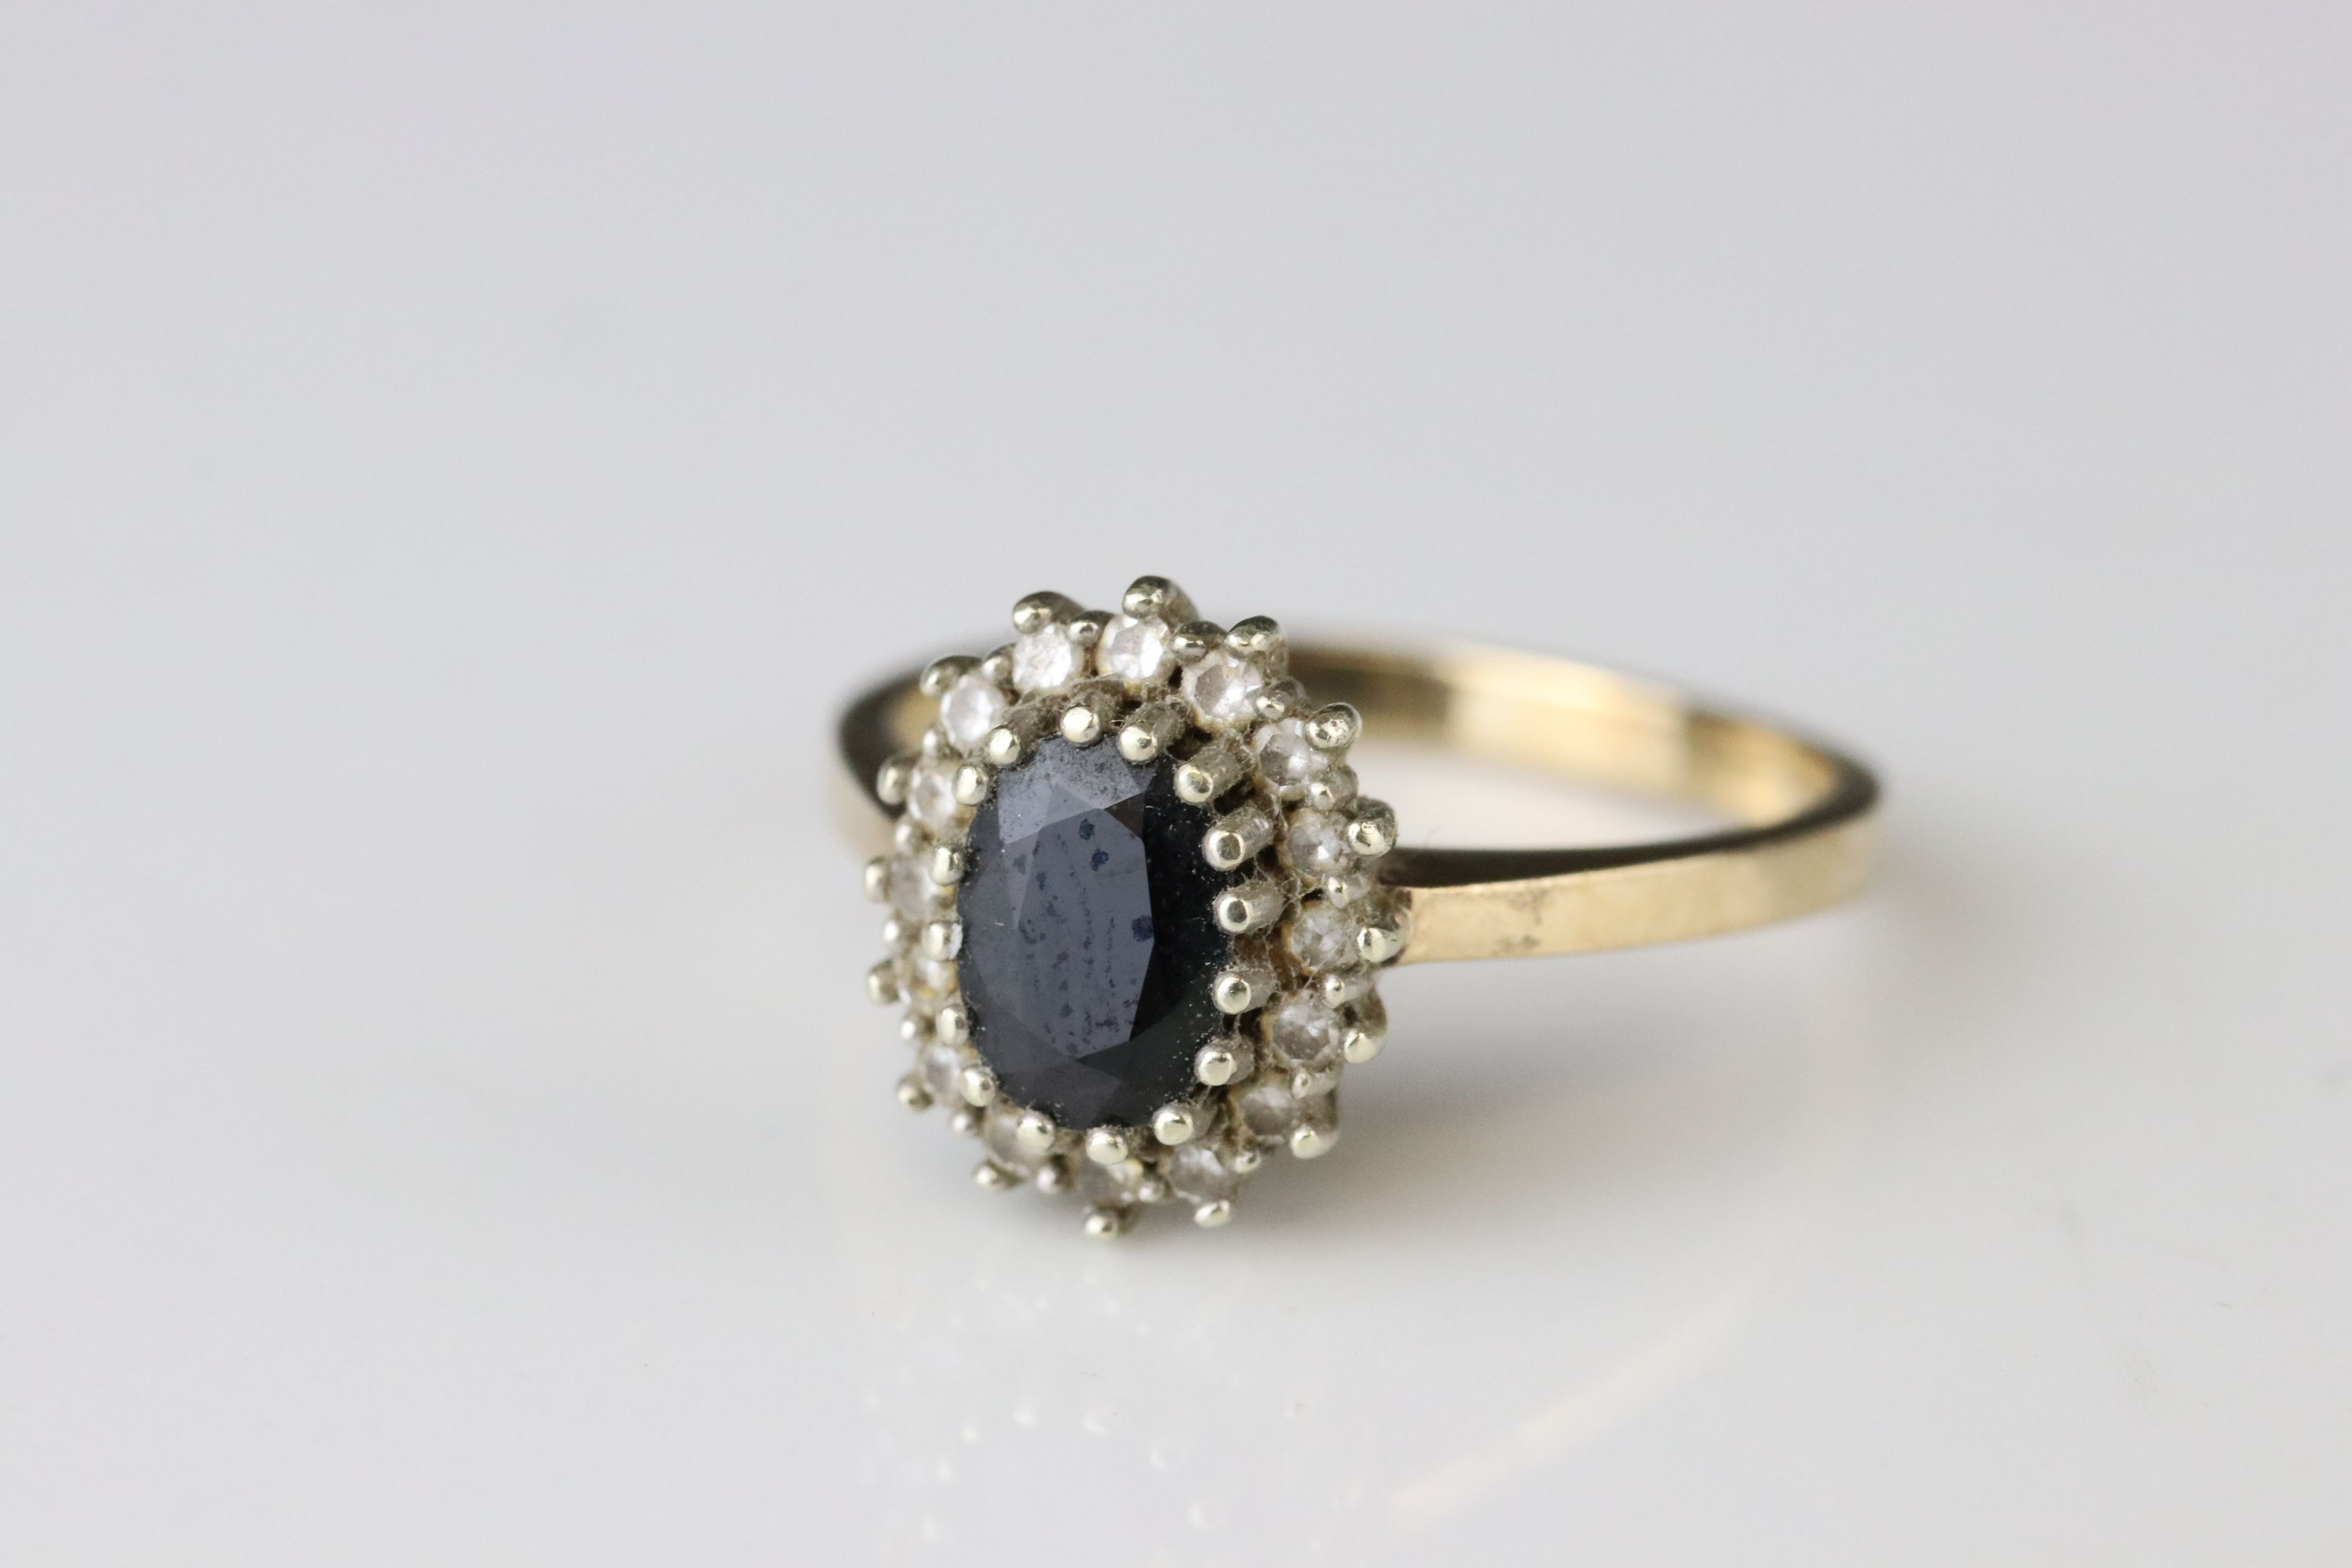 Sapphire 9ct yellow gold cluster ring, together with black sapphire and white stone 9ct yellow - Image 5 of 5